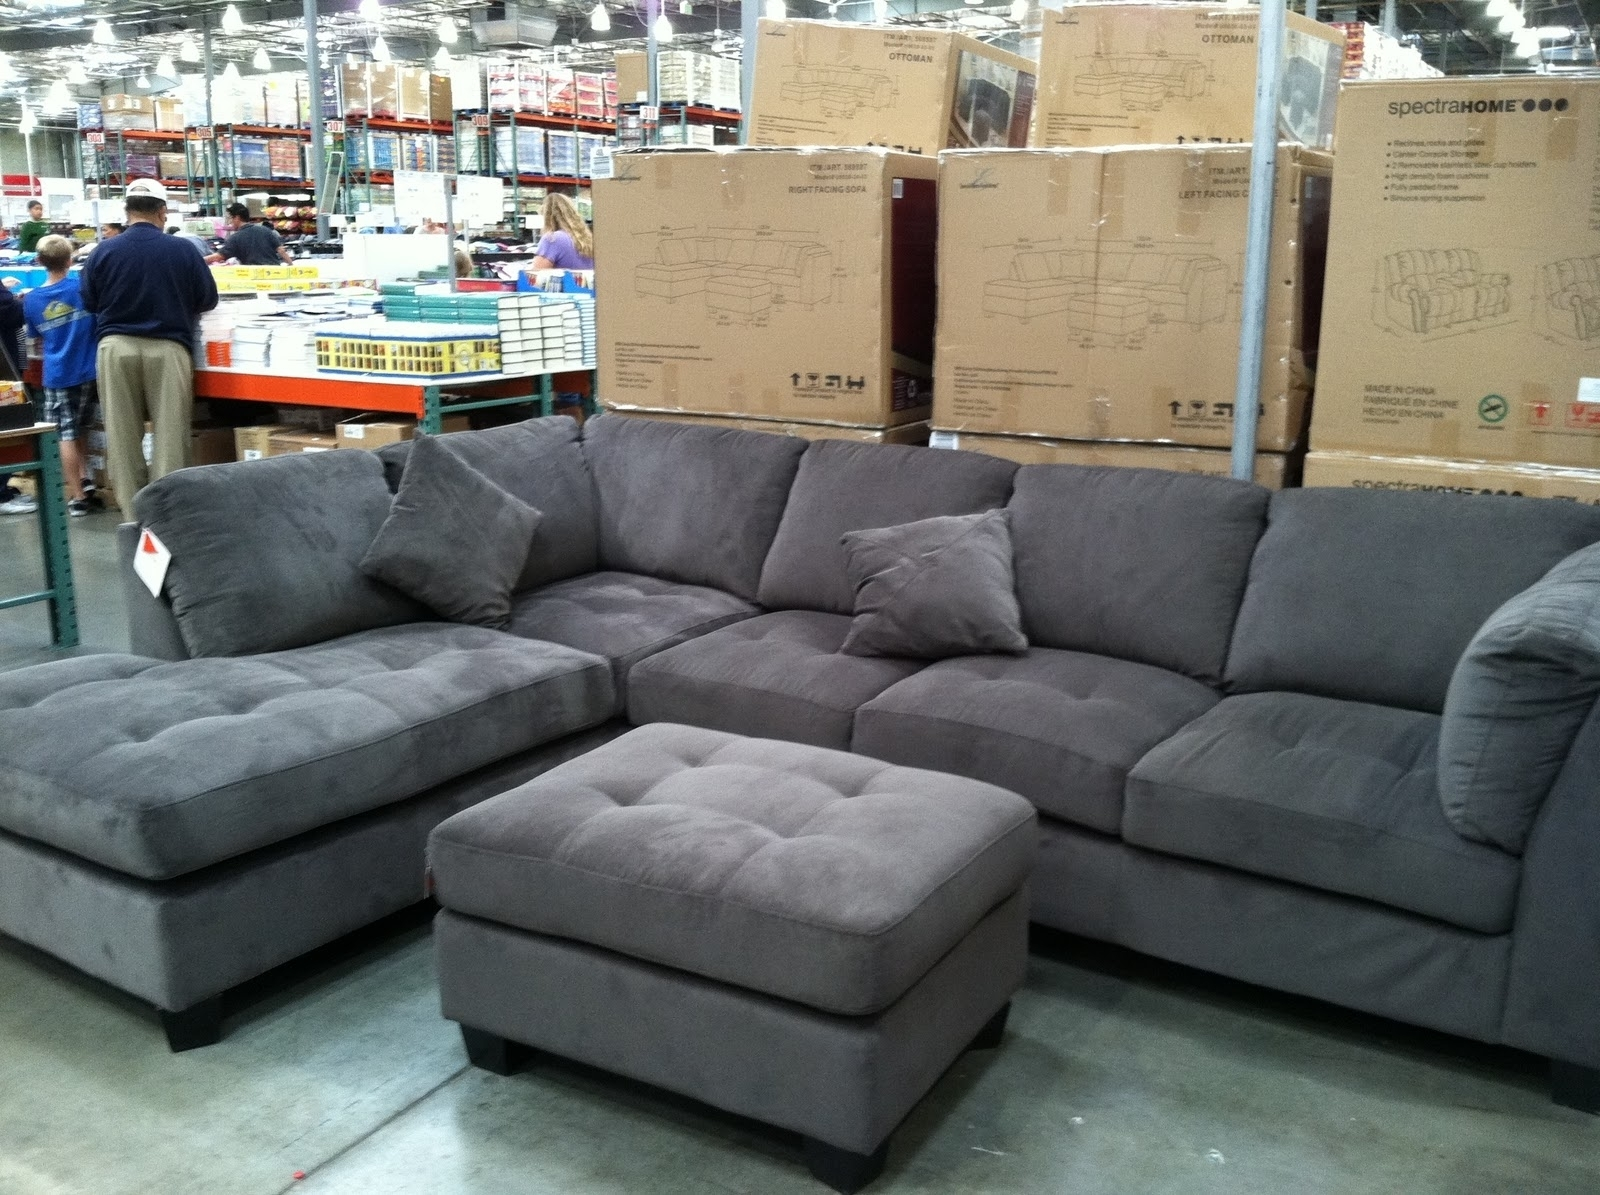 15 Best Collection Of Gray Sectional Sofa Costco Intended For Sectional Sofas At Costco (View 1 of 15)